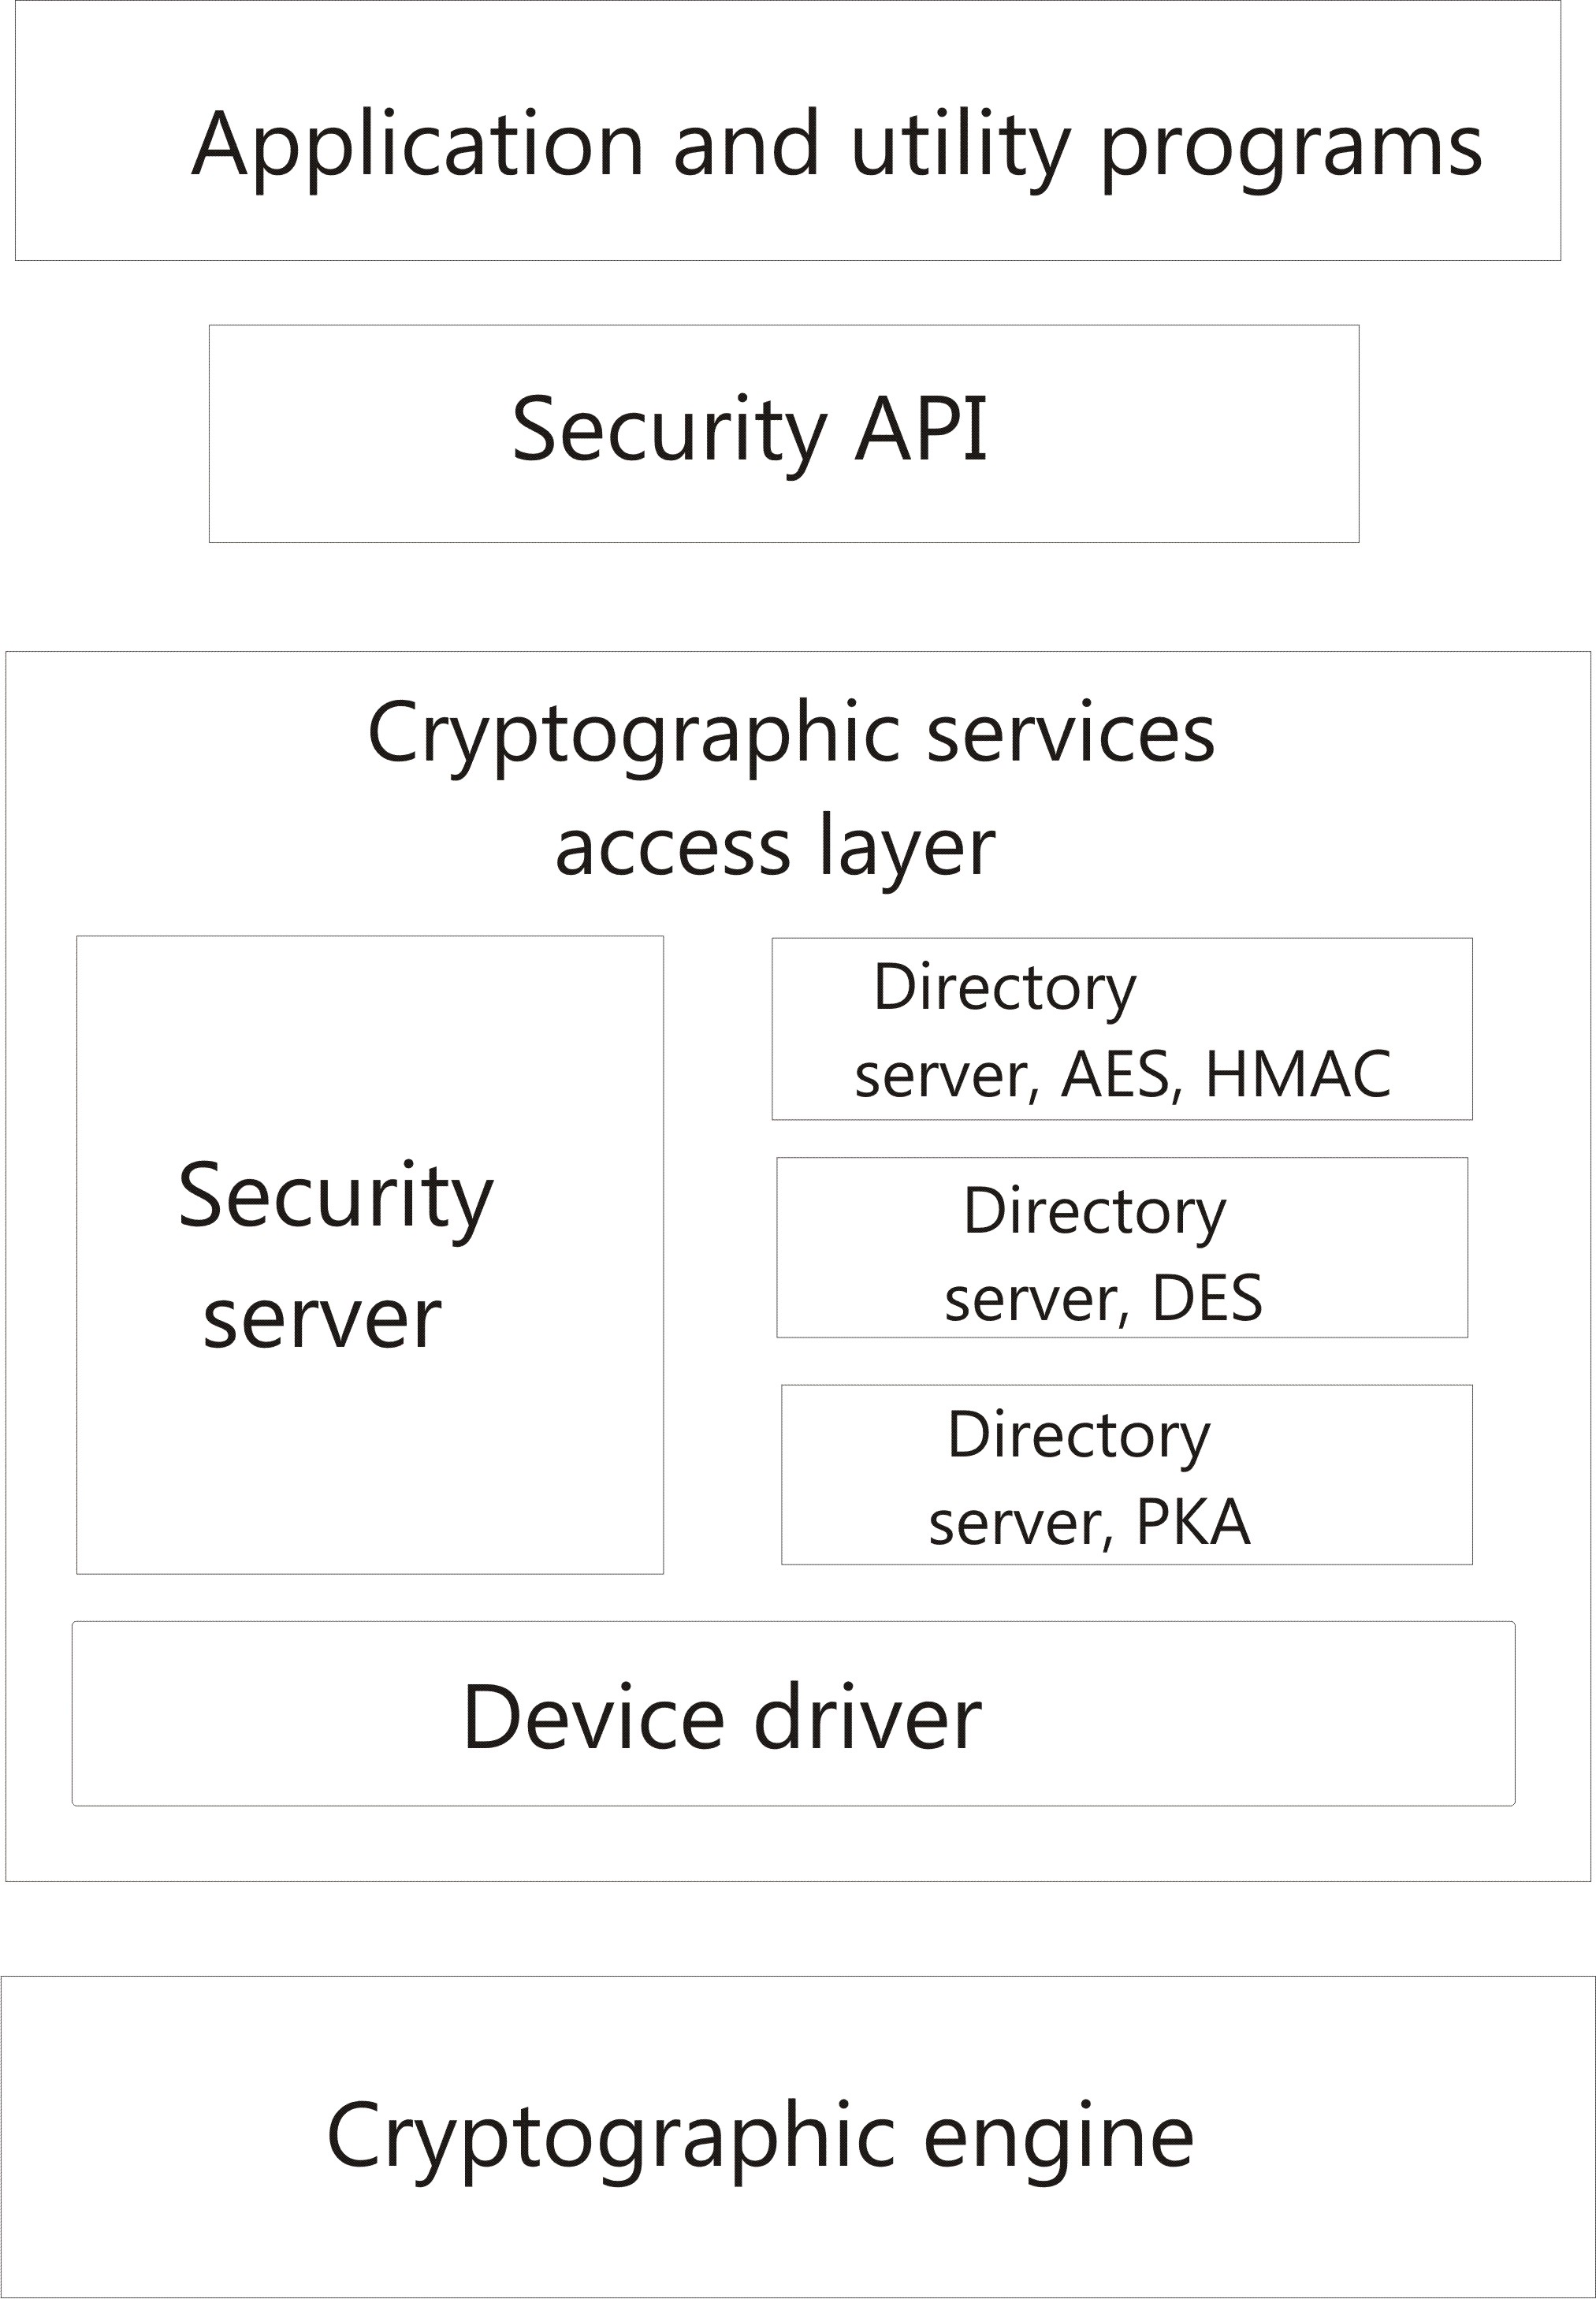 Common cryptographic architecture cca functional overview for diagram of cca security api access layer and cryptographic engine 1betcityfo Gallery